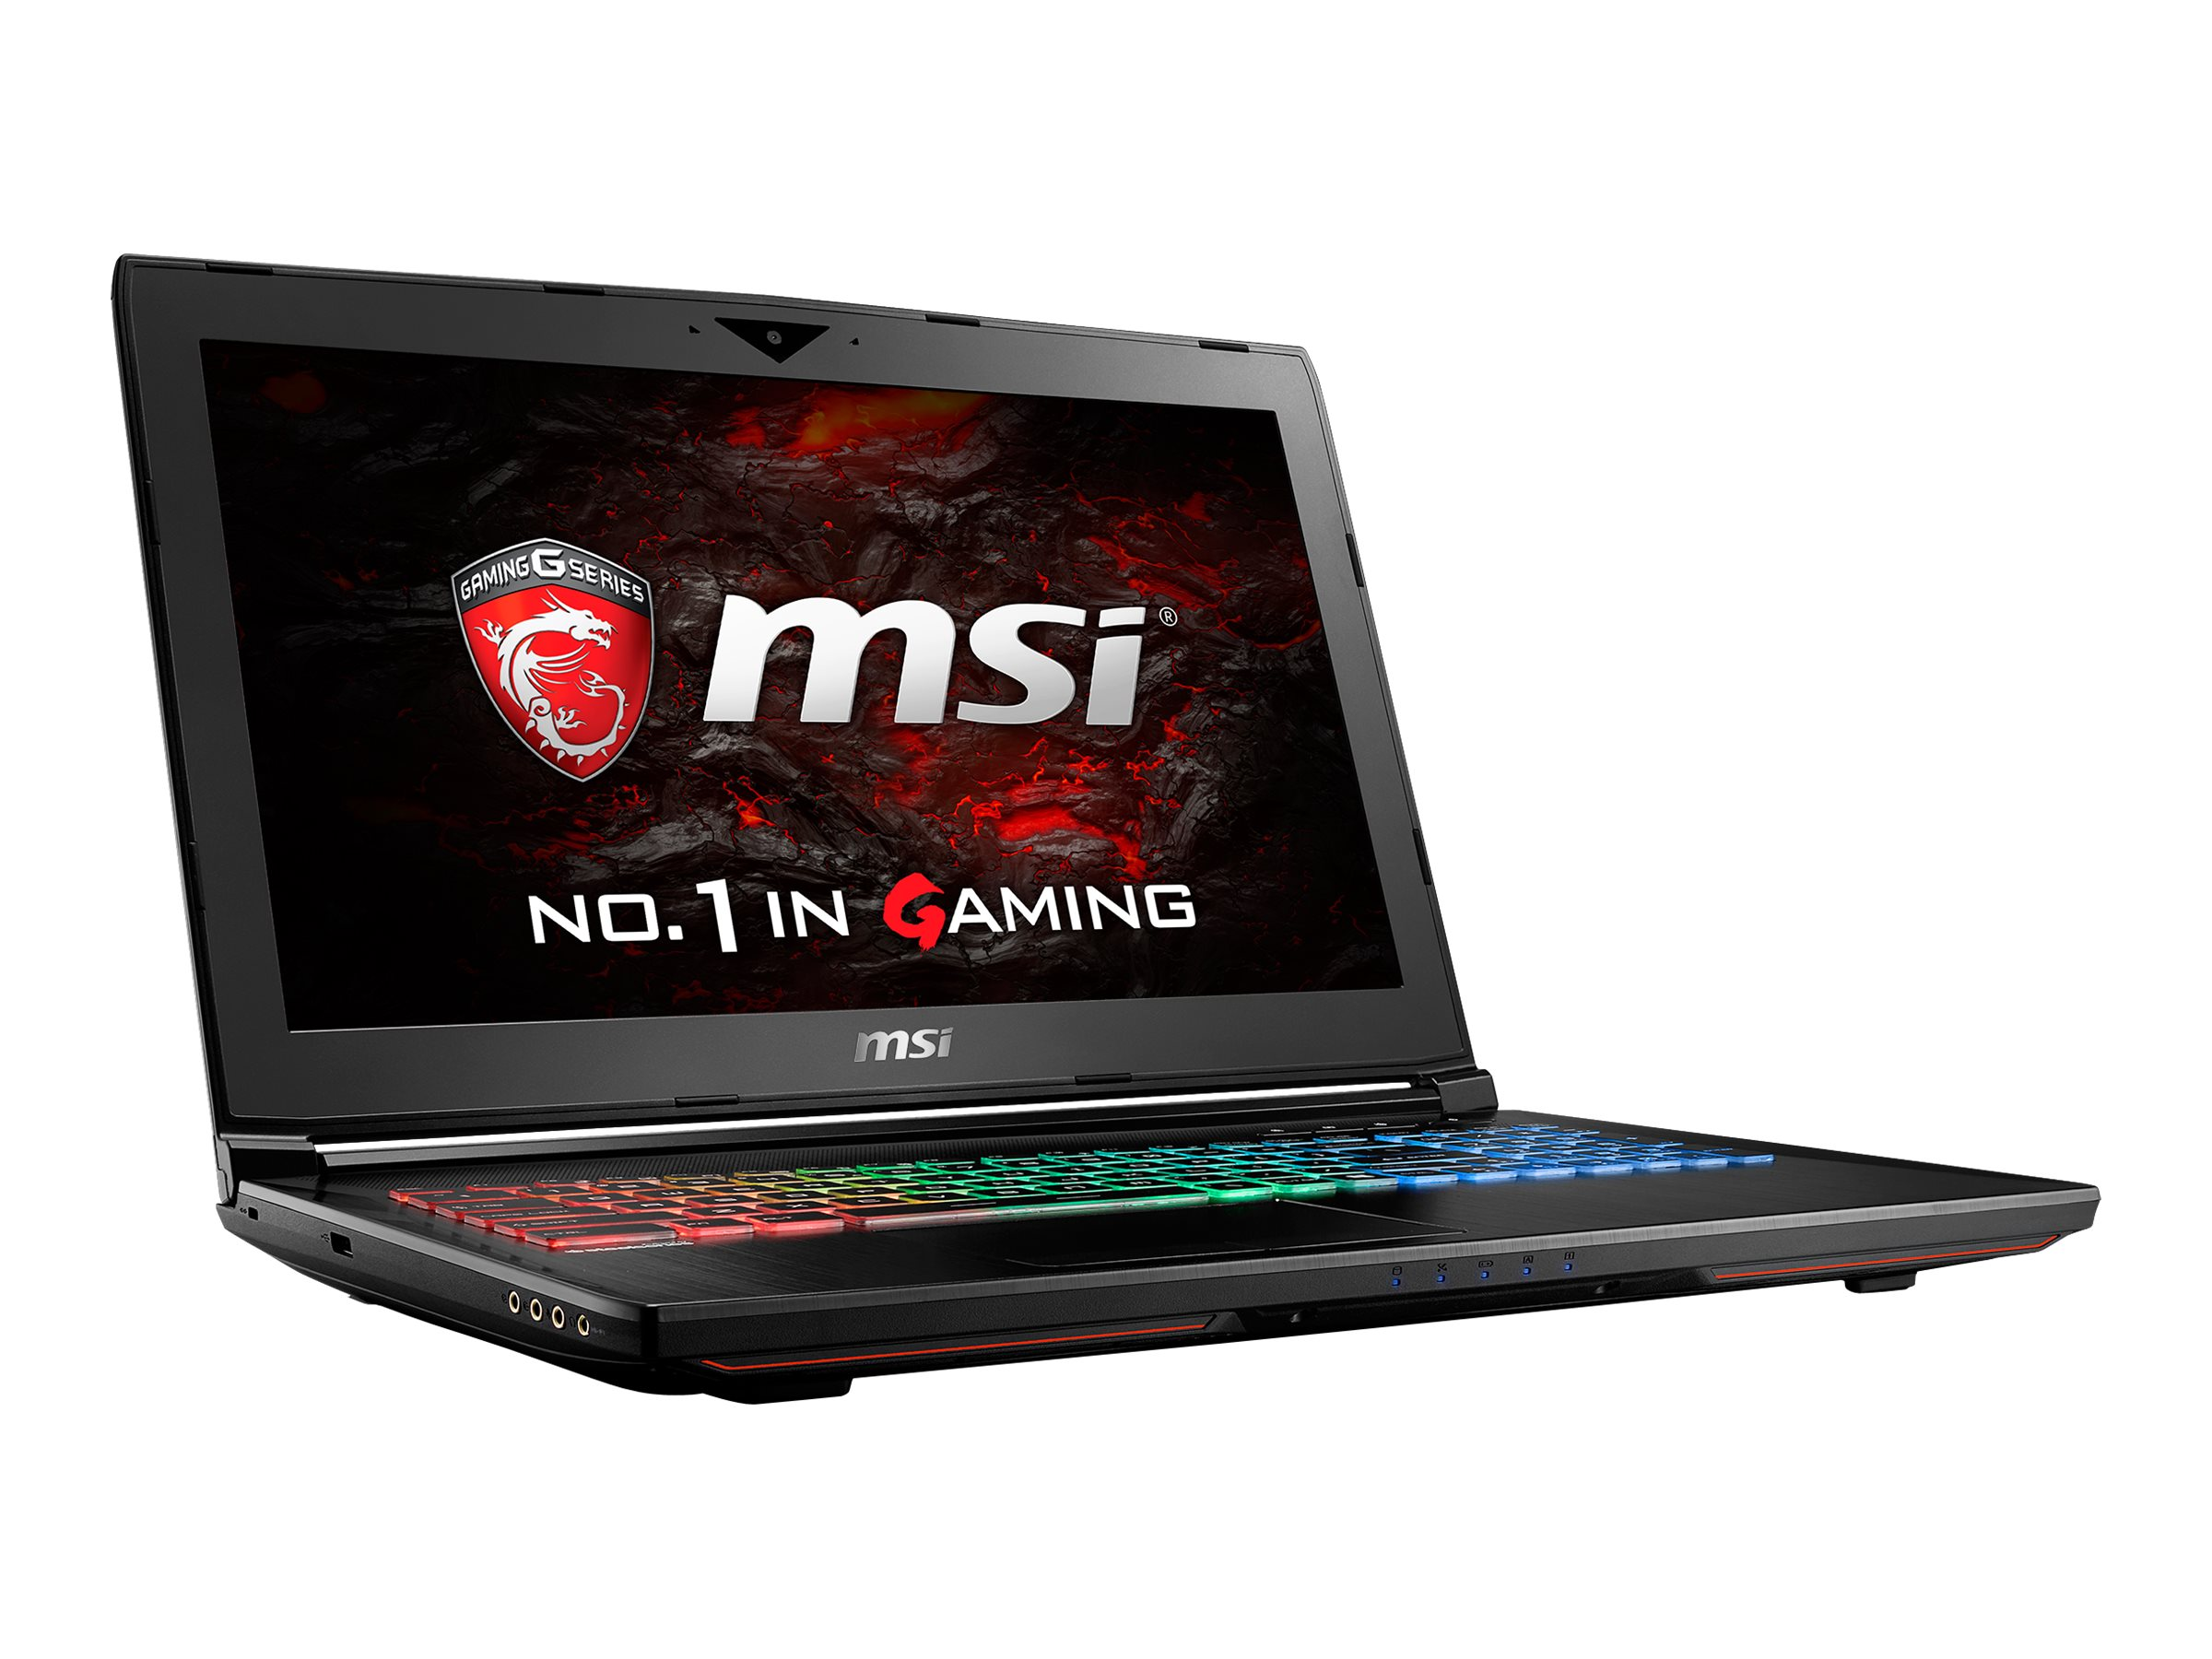 MSI GT62VR Dominator-078 Core i7-6700HQ 2.6GHz 16GB 1TB ac GNIC BT GTX1060 15.6 FHD W10